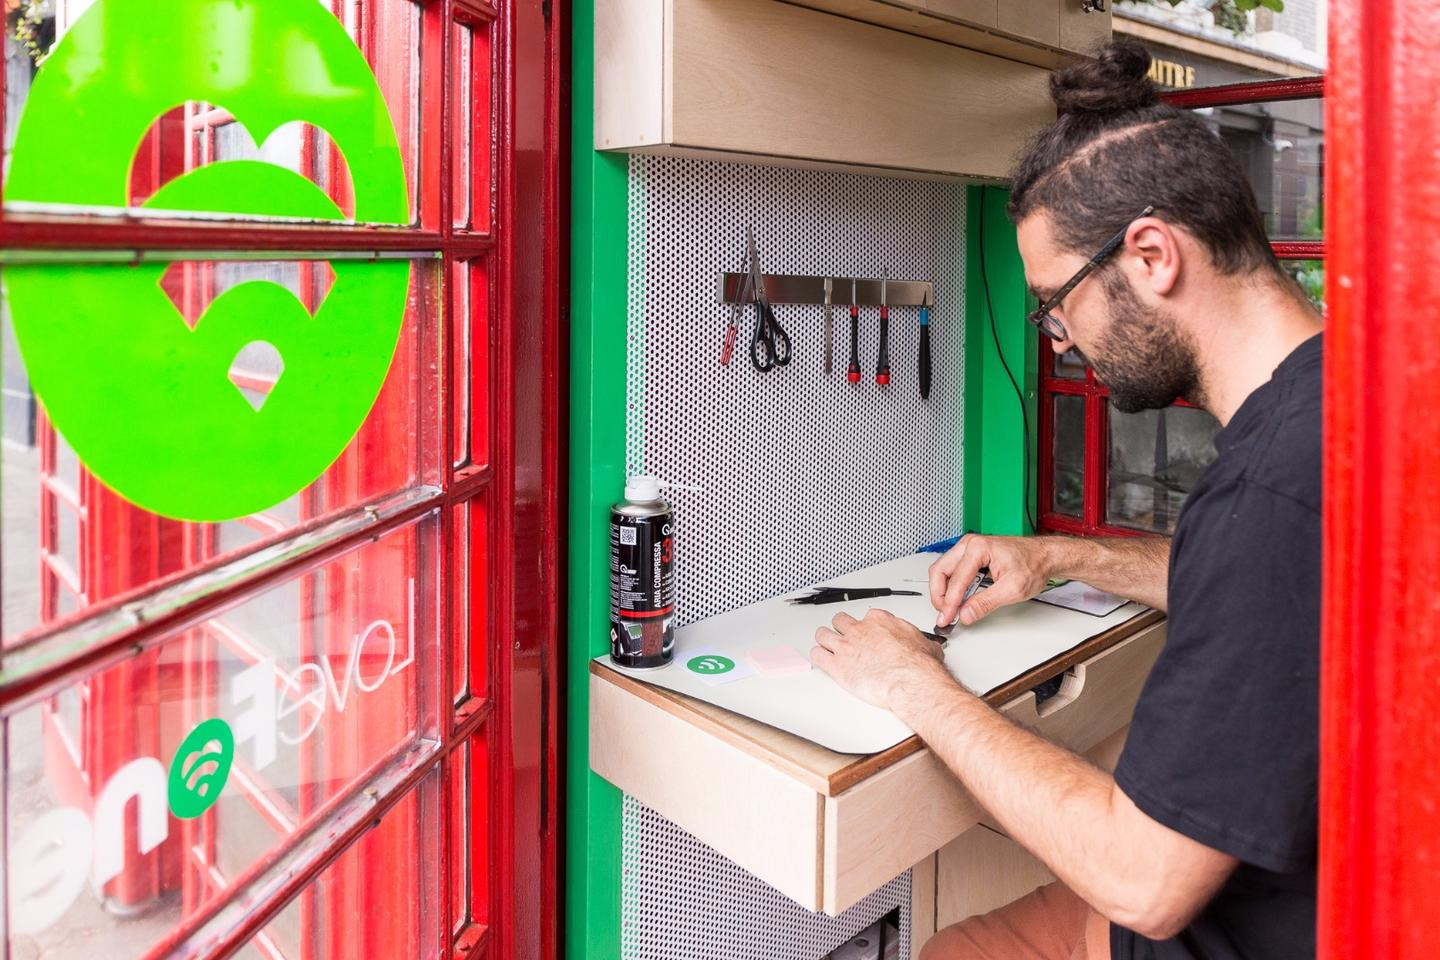 Lovefone leases the phone box units from the Red Kiosk Company